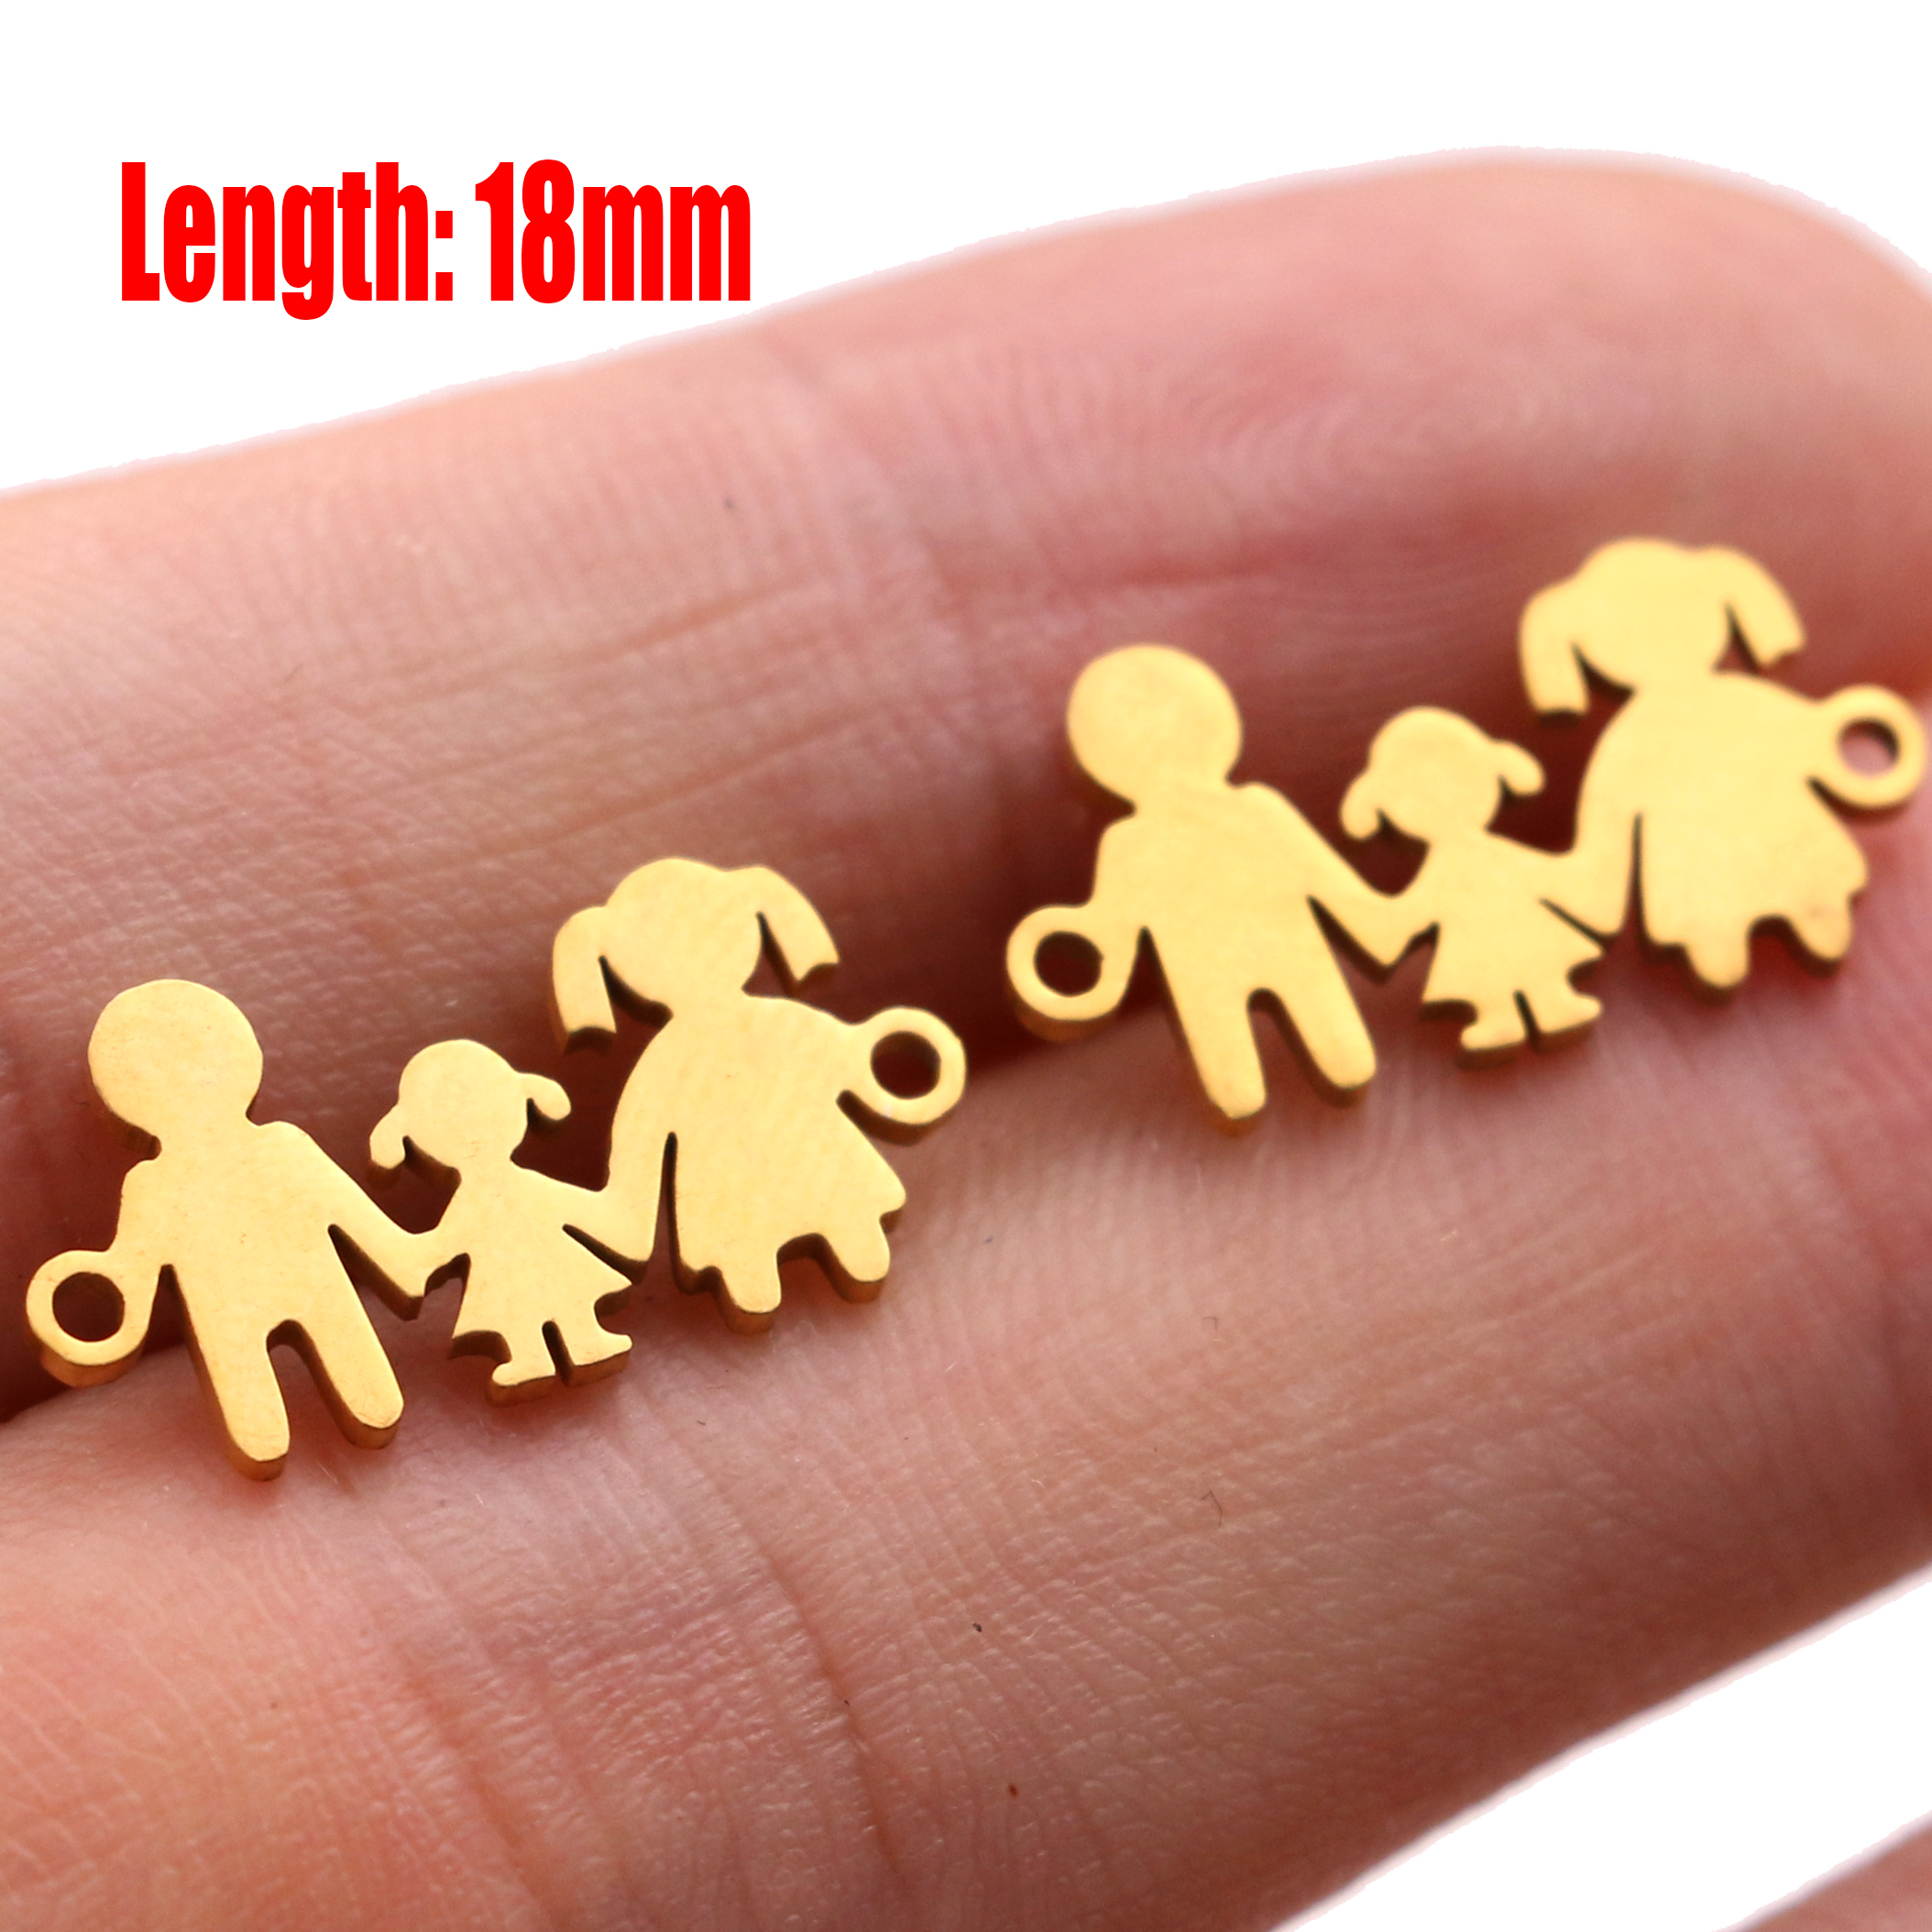 5pcs Family Chain Stainless Steel Pendant Necklace Parents and Children Necklaces Gold/steel Jewelry Gift for Mom Dad New Twice - Цвет: Gold 19